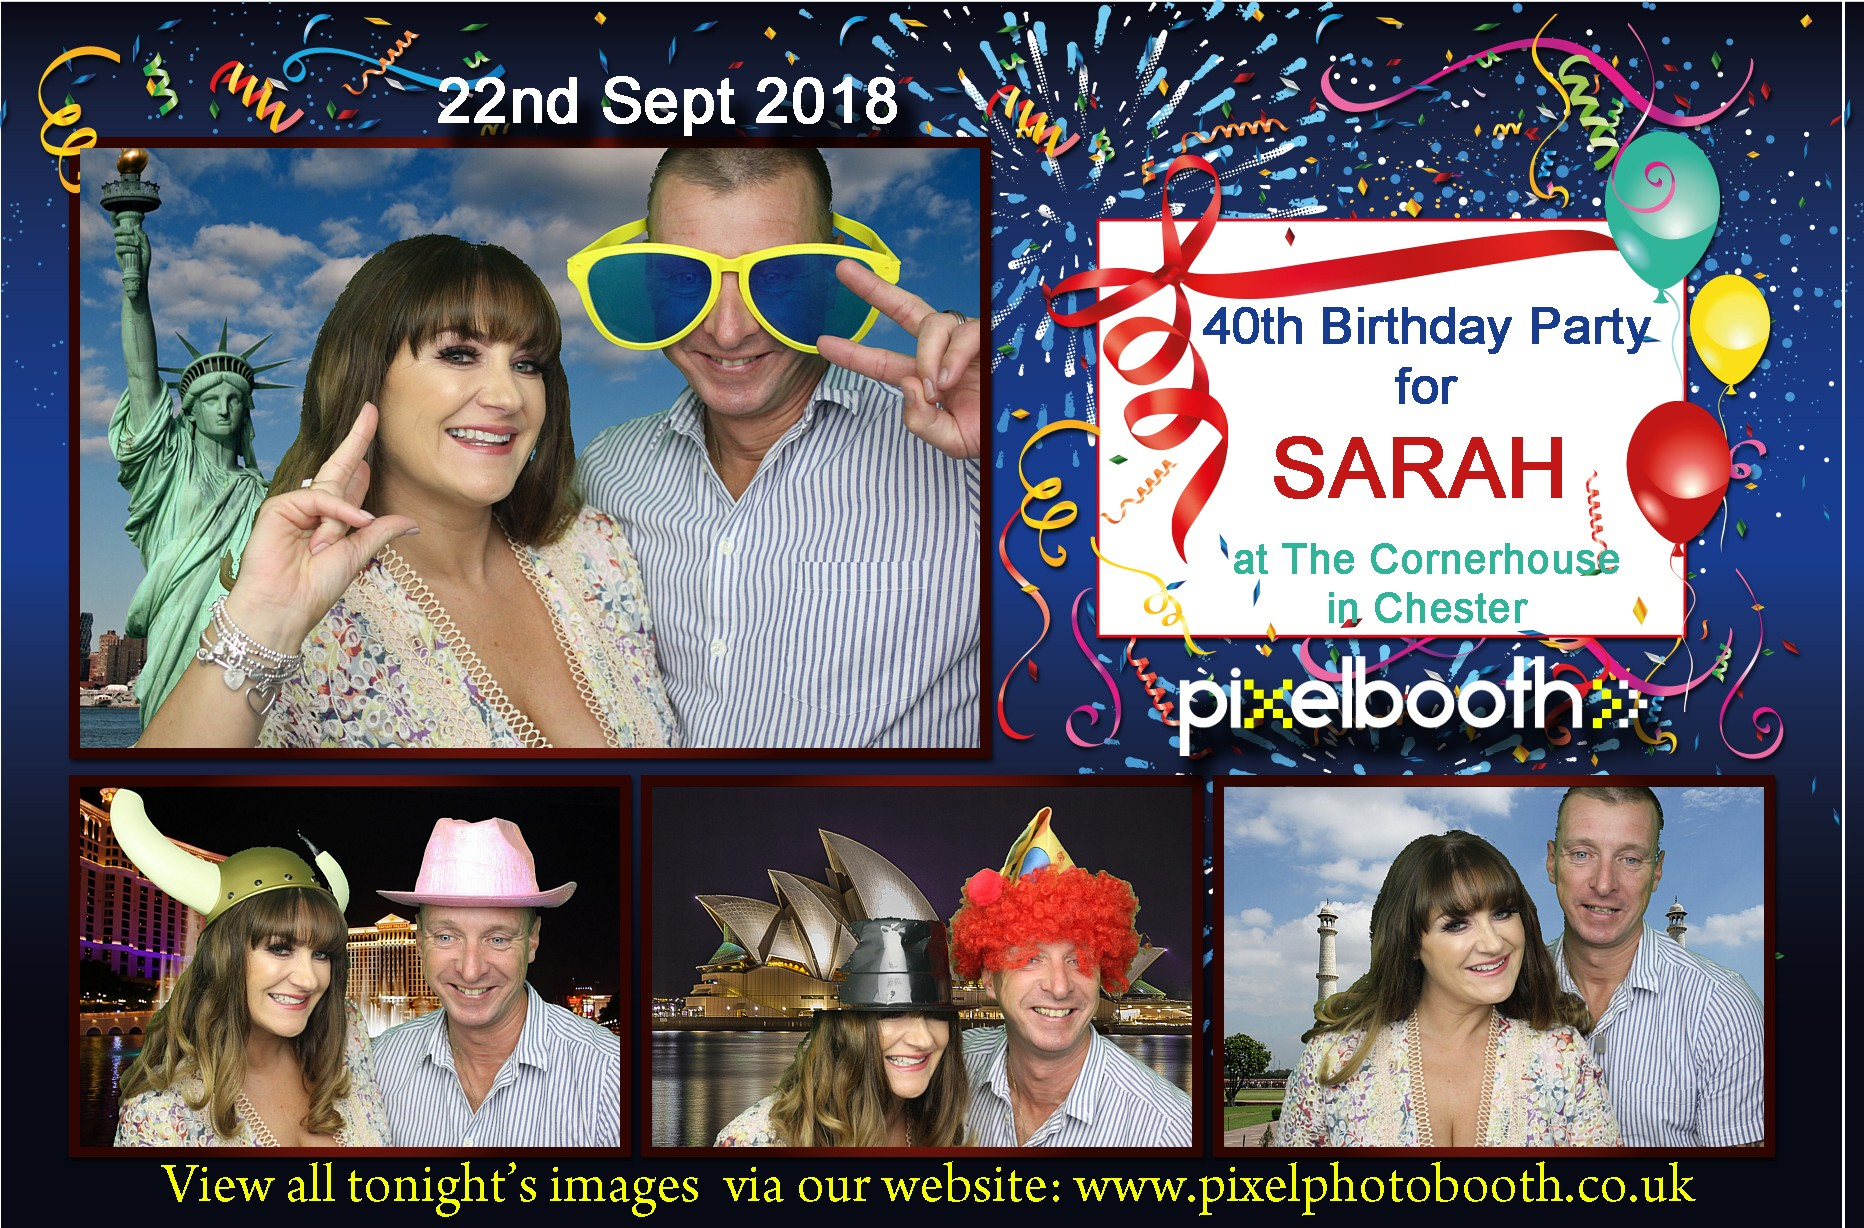 22nd Sept 2018: Sarah's 40th Birthday at The Cornerhouse, Chester